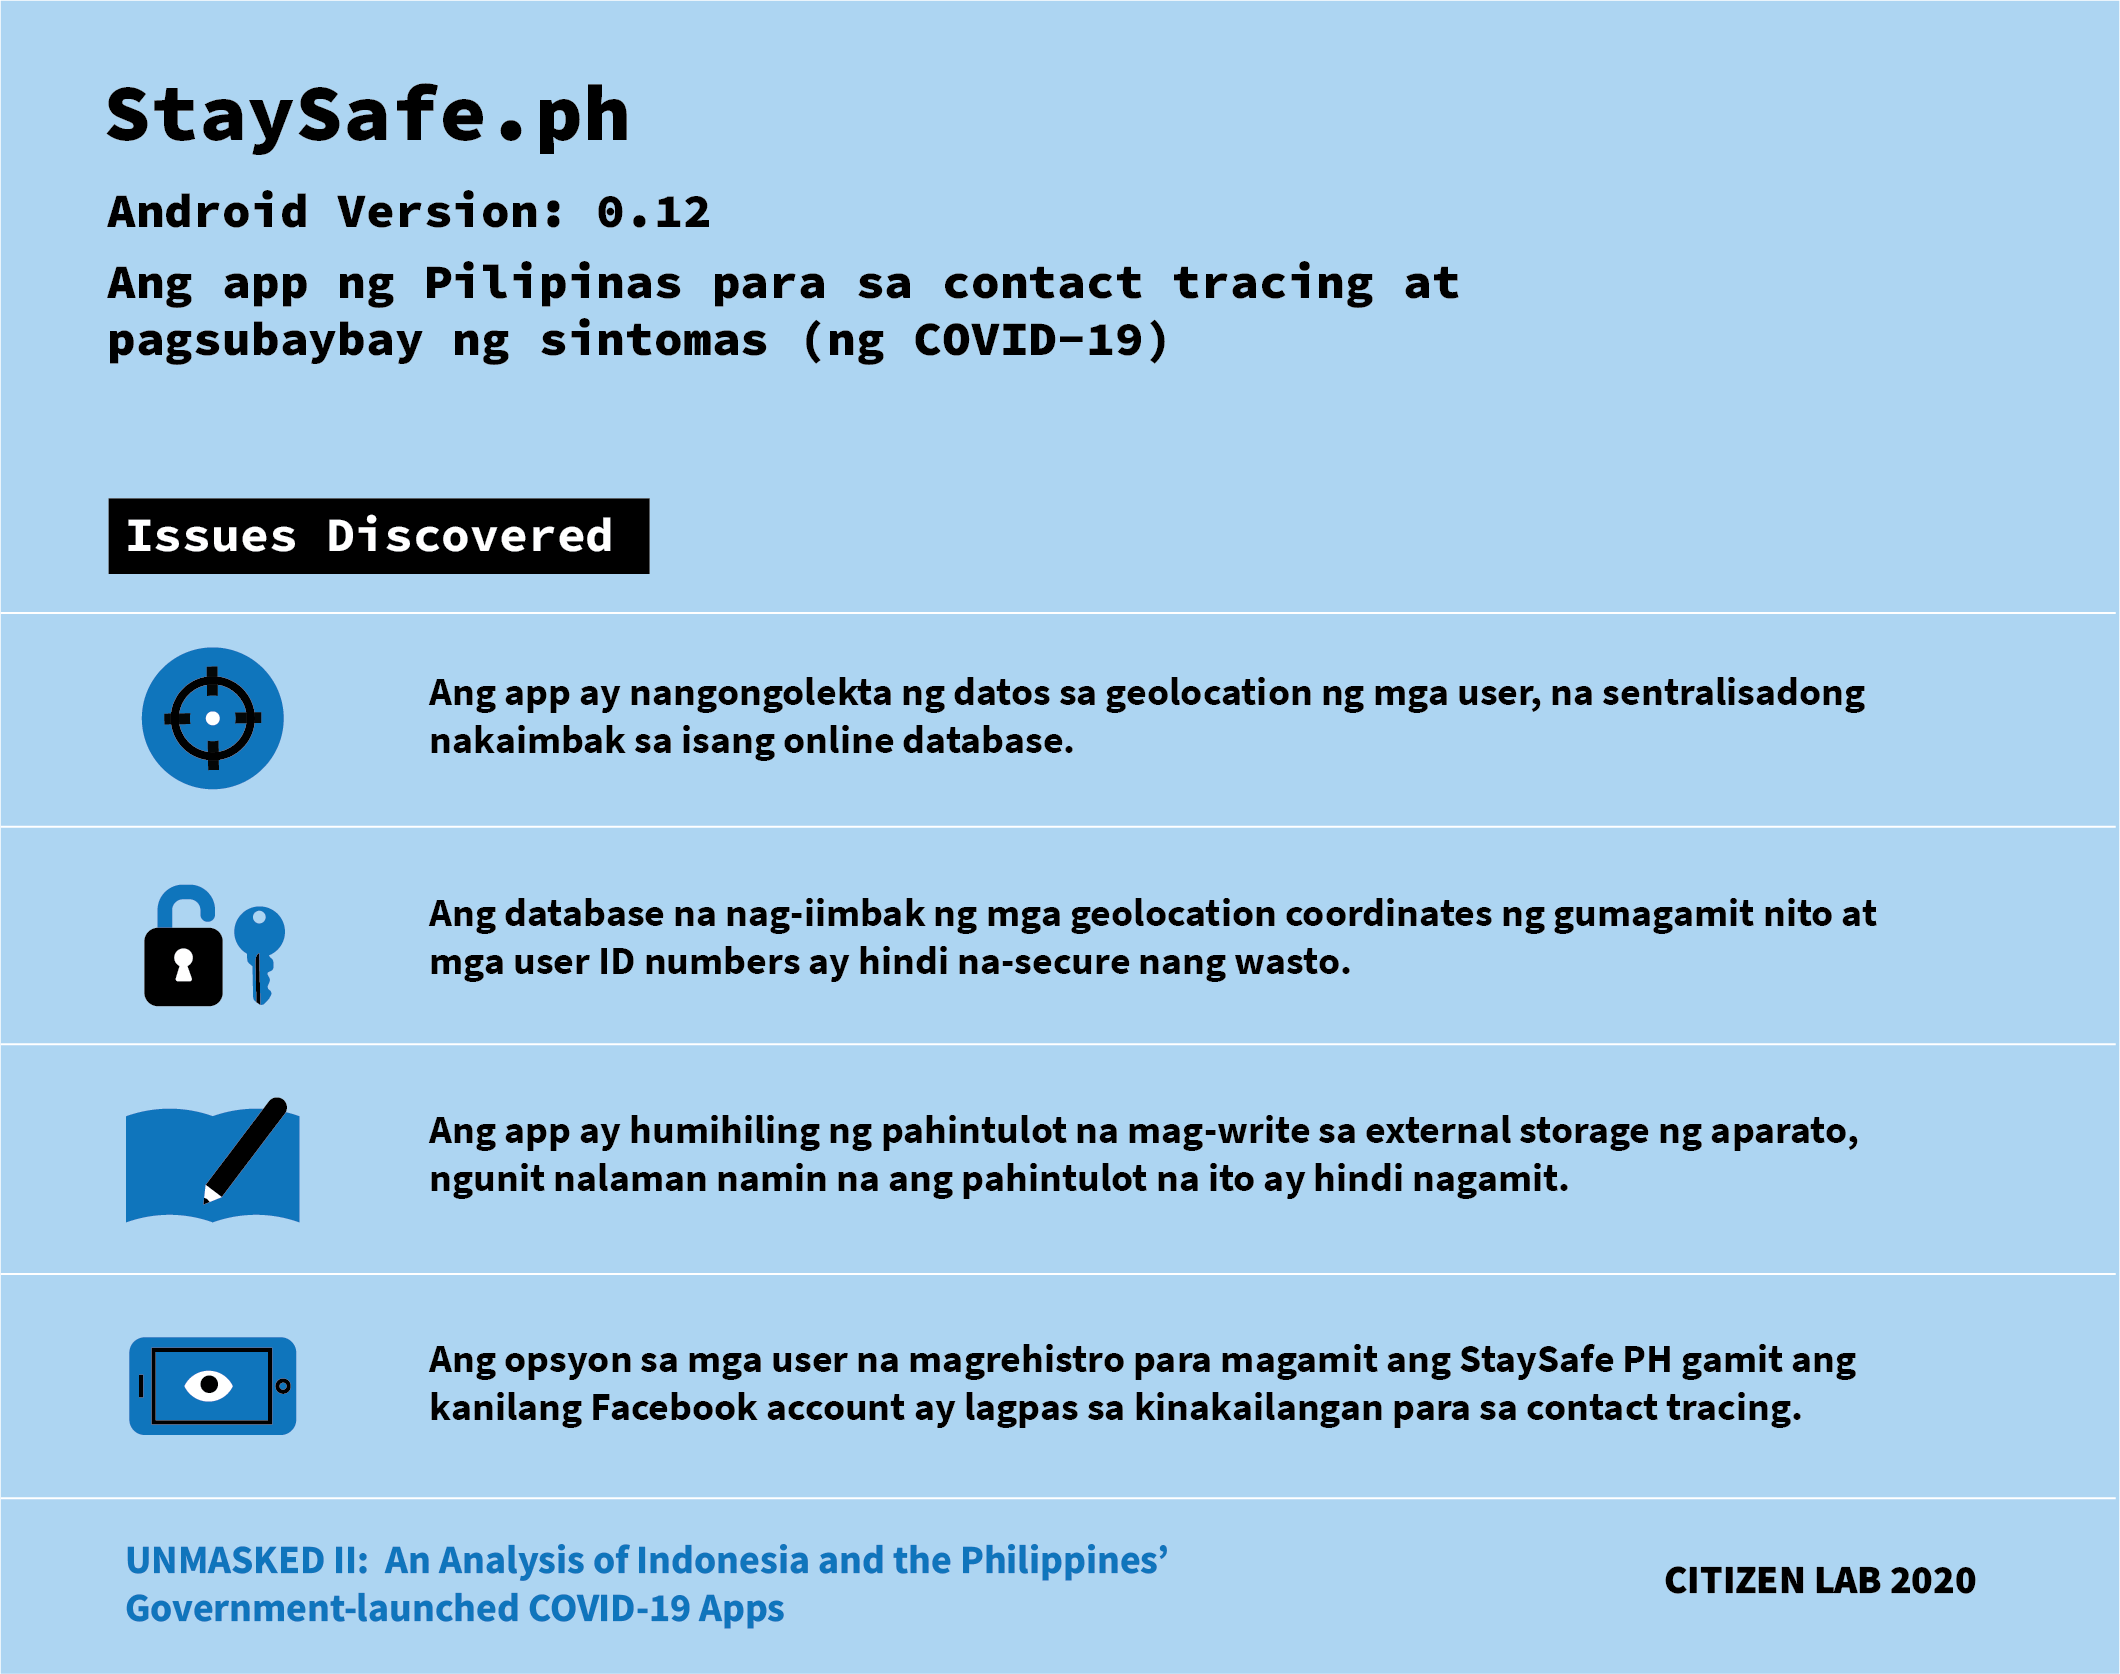 Issues discovered on the app StaySafe PH